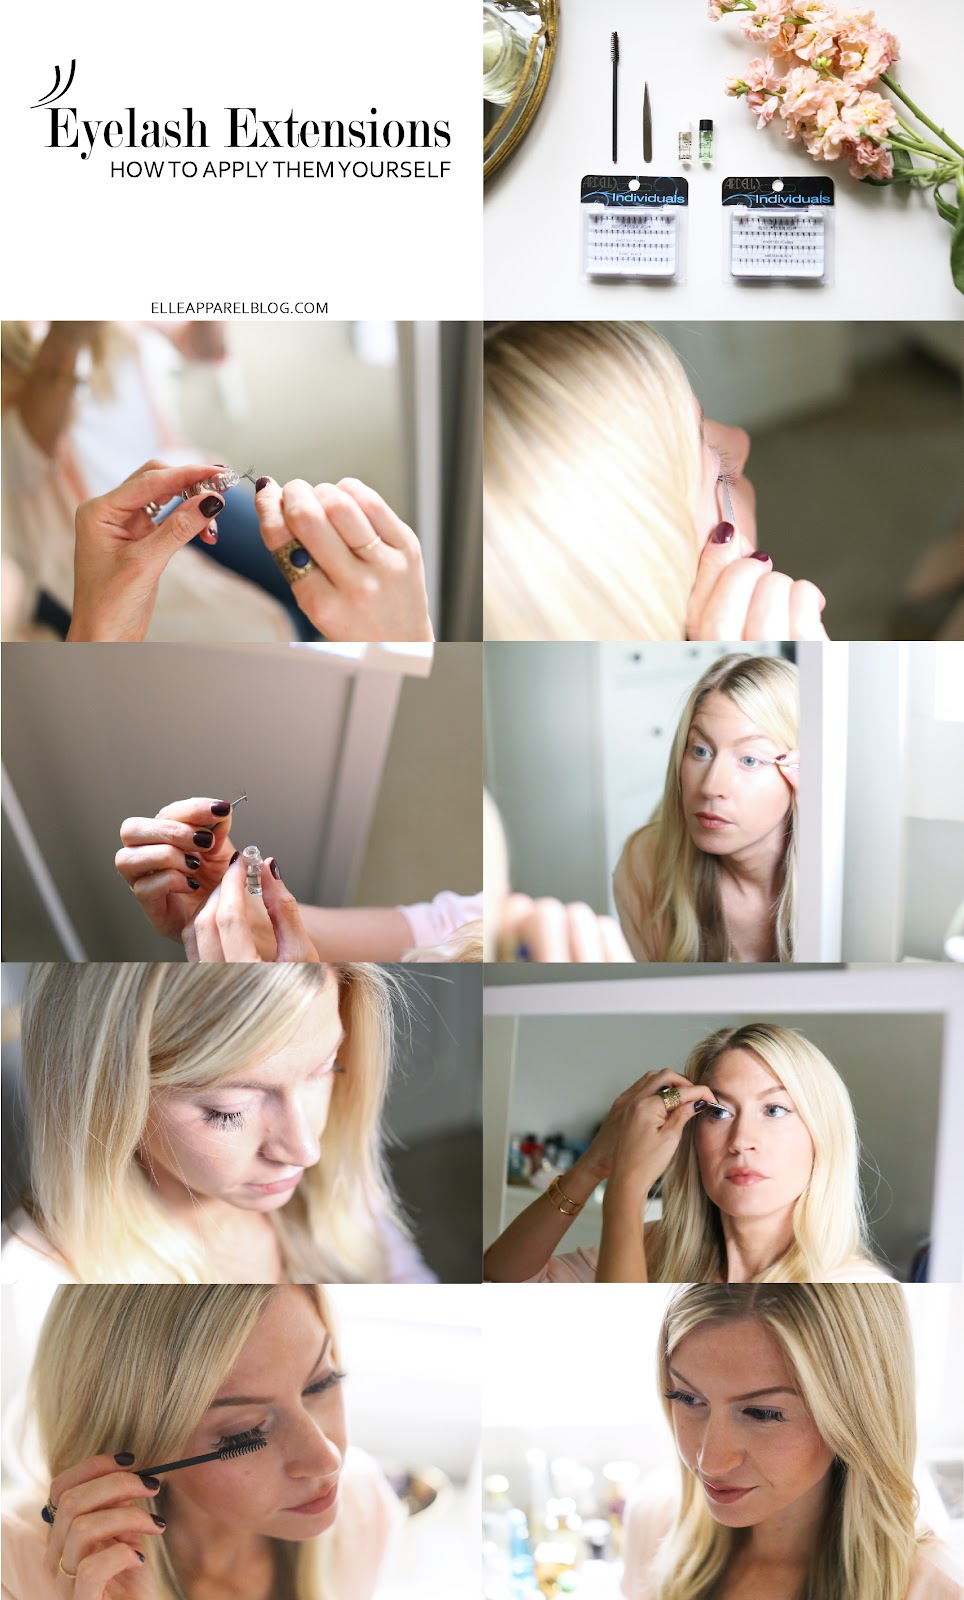 How To Apply Eyelash Extensions Yourself Elle Apparel By Leanne Barlow